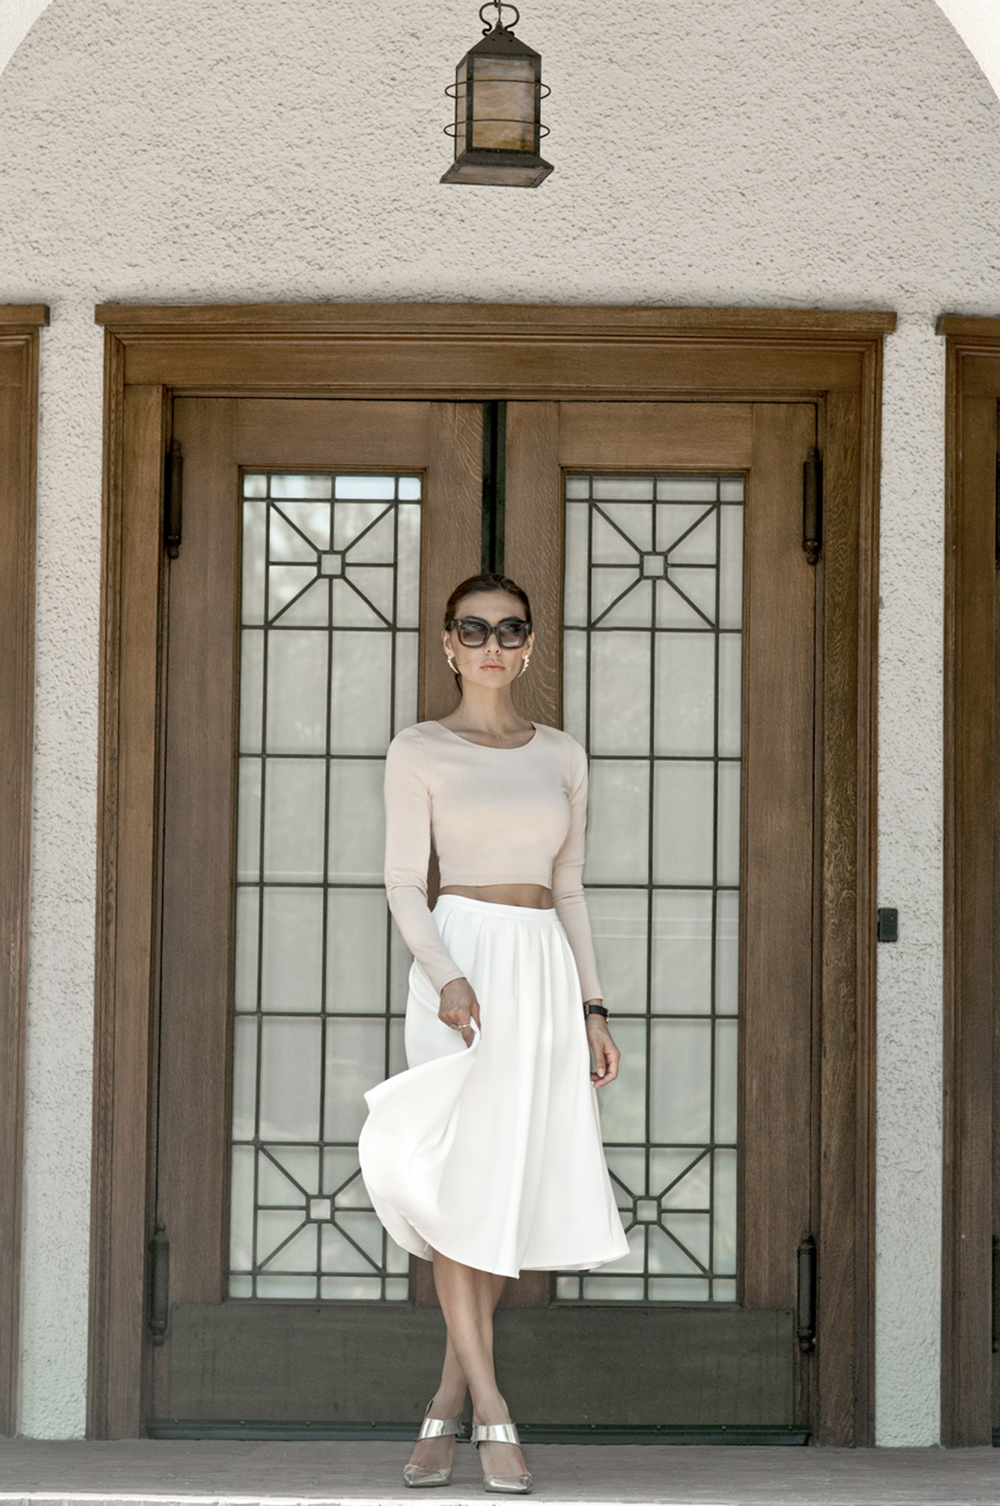 WEARING:  Ax Paris Top  ,  Missguided Skirt ,  Lillot Earrings ,  Elizabeth and James Shoes ,  Daniel Wellington Sheffield Watch (Get 20% off with the code hellosummer) ,  Céline Audrey Sunglasses ,  Krystle Knight Cirrus Rings ,  Nashelle Brko Ring